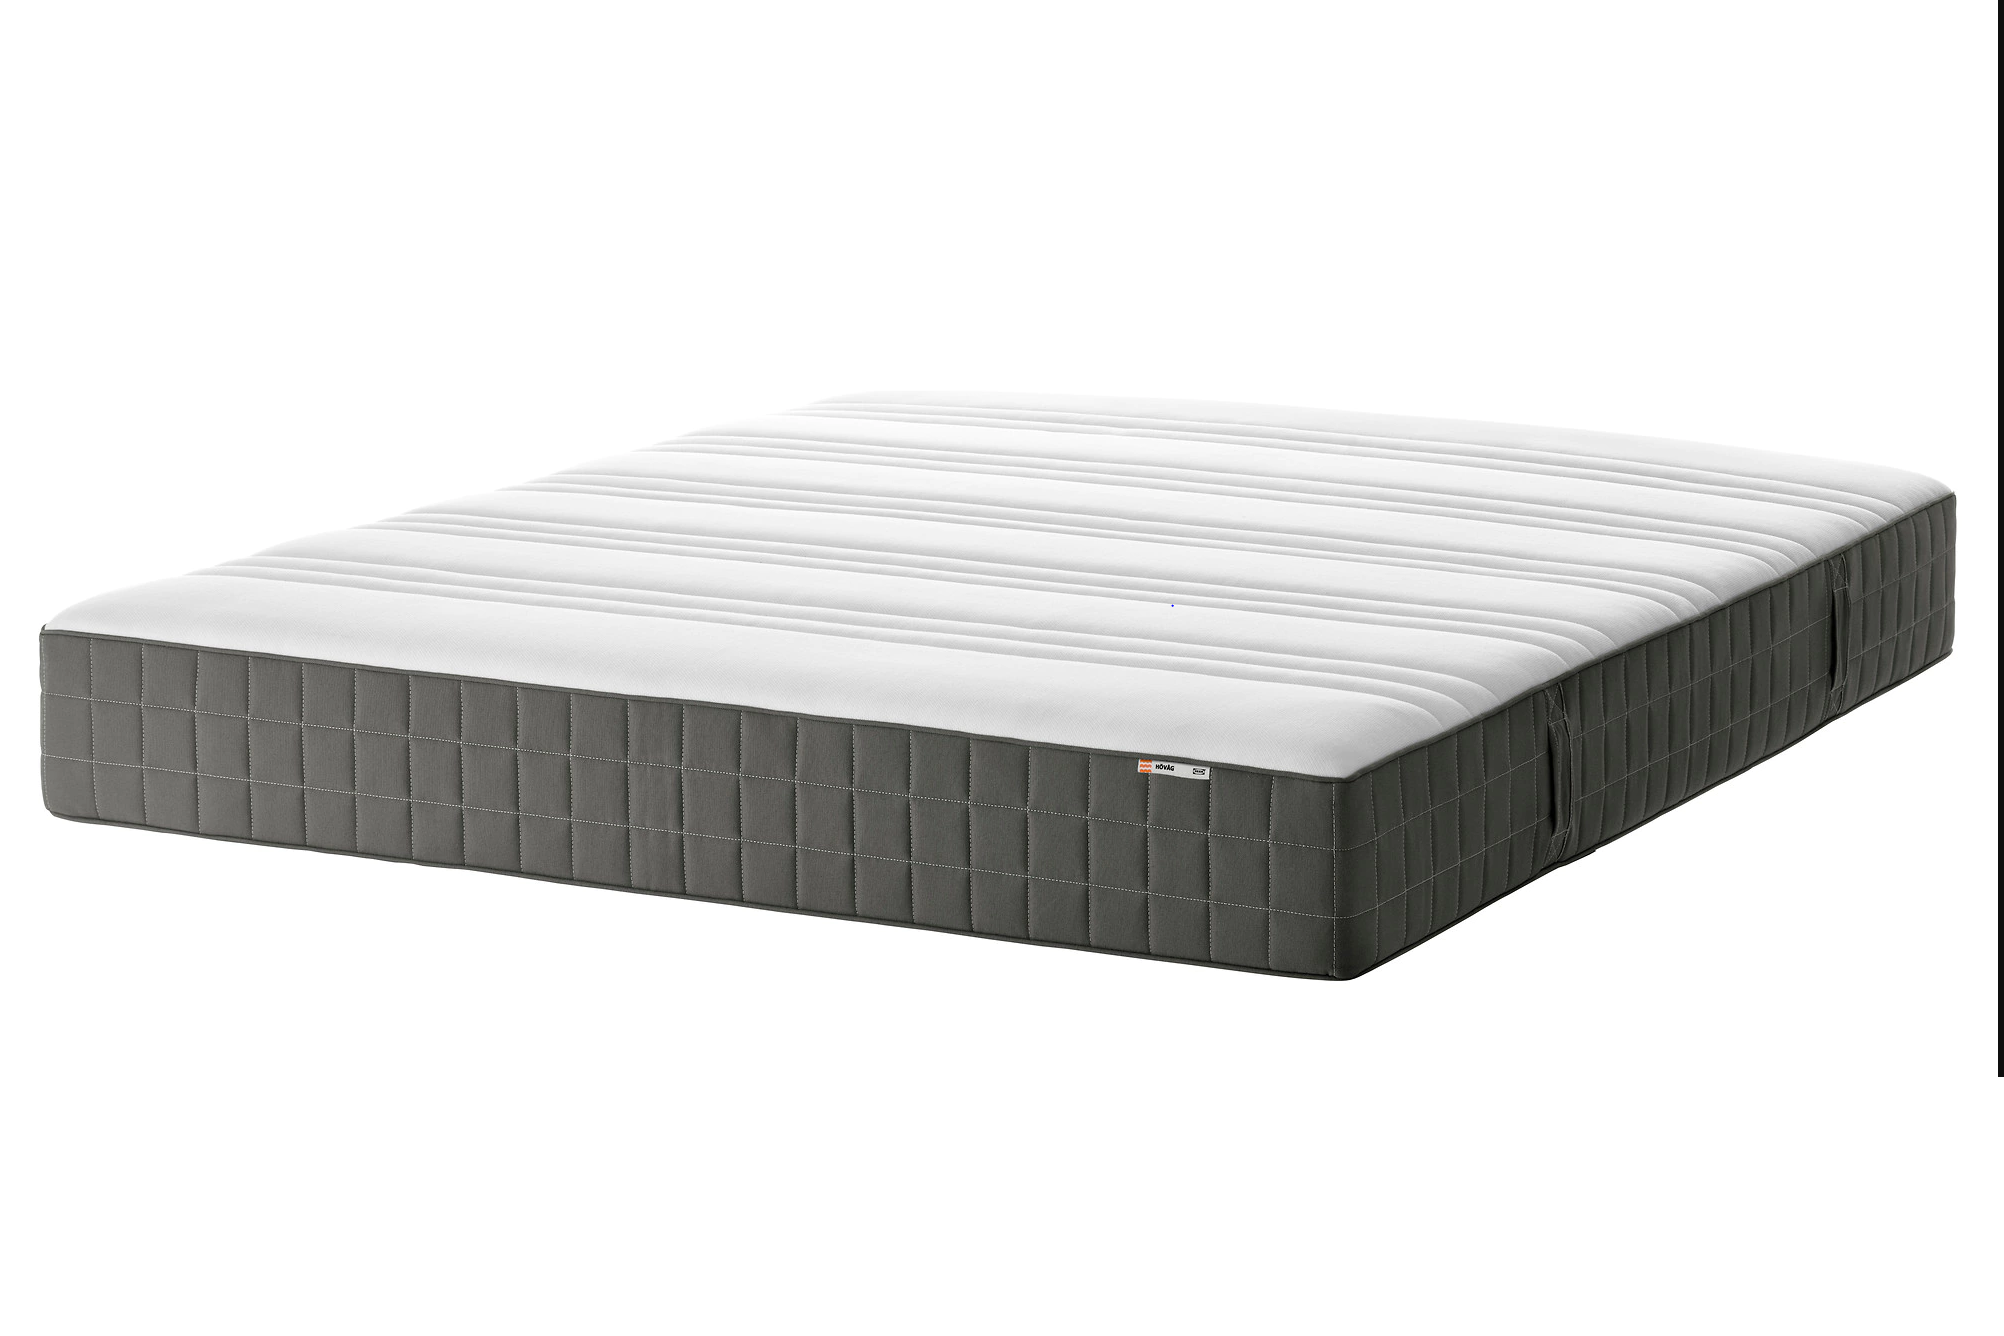 vanegroo uk with ikea white wood wooden bed toddler info mattress